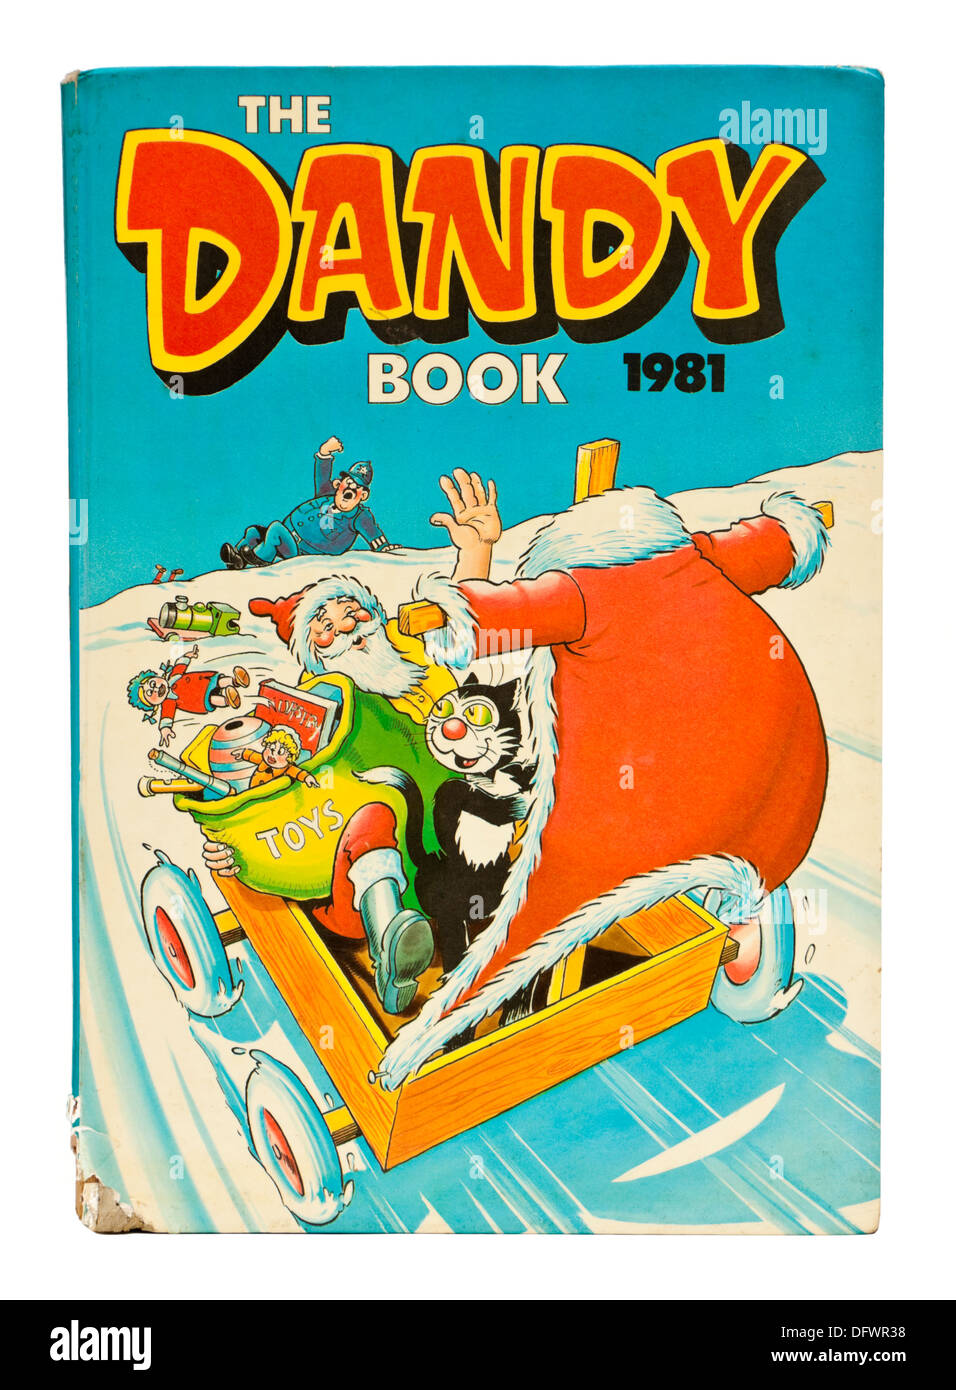 Vintage 1981 'Dandy' comic annual, featuring Korky the Cat and Desperate Dan - Stock Image